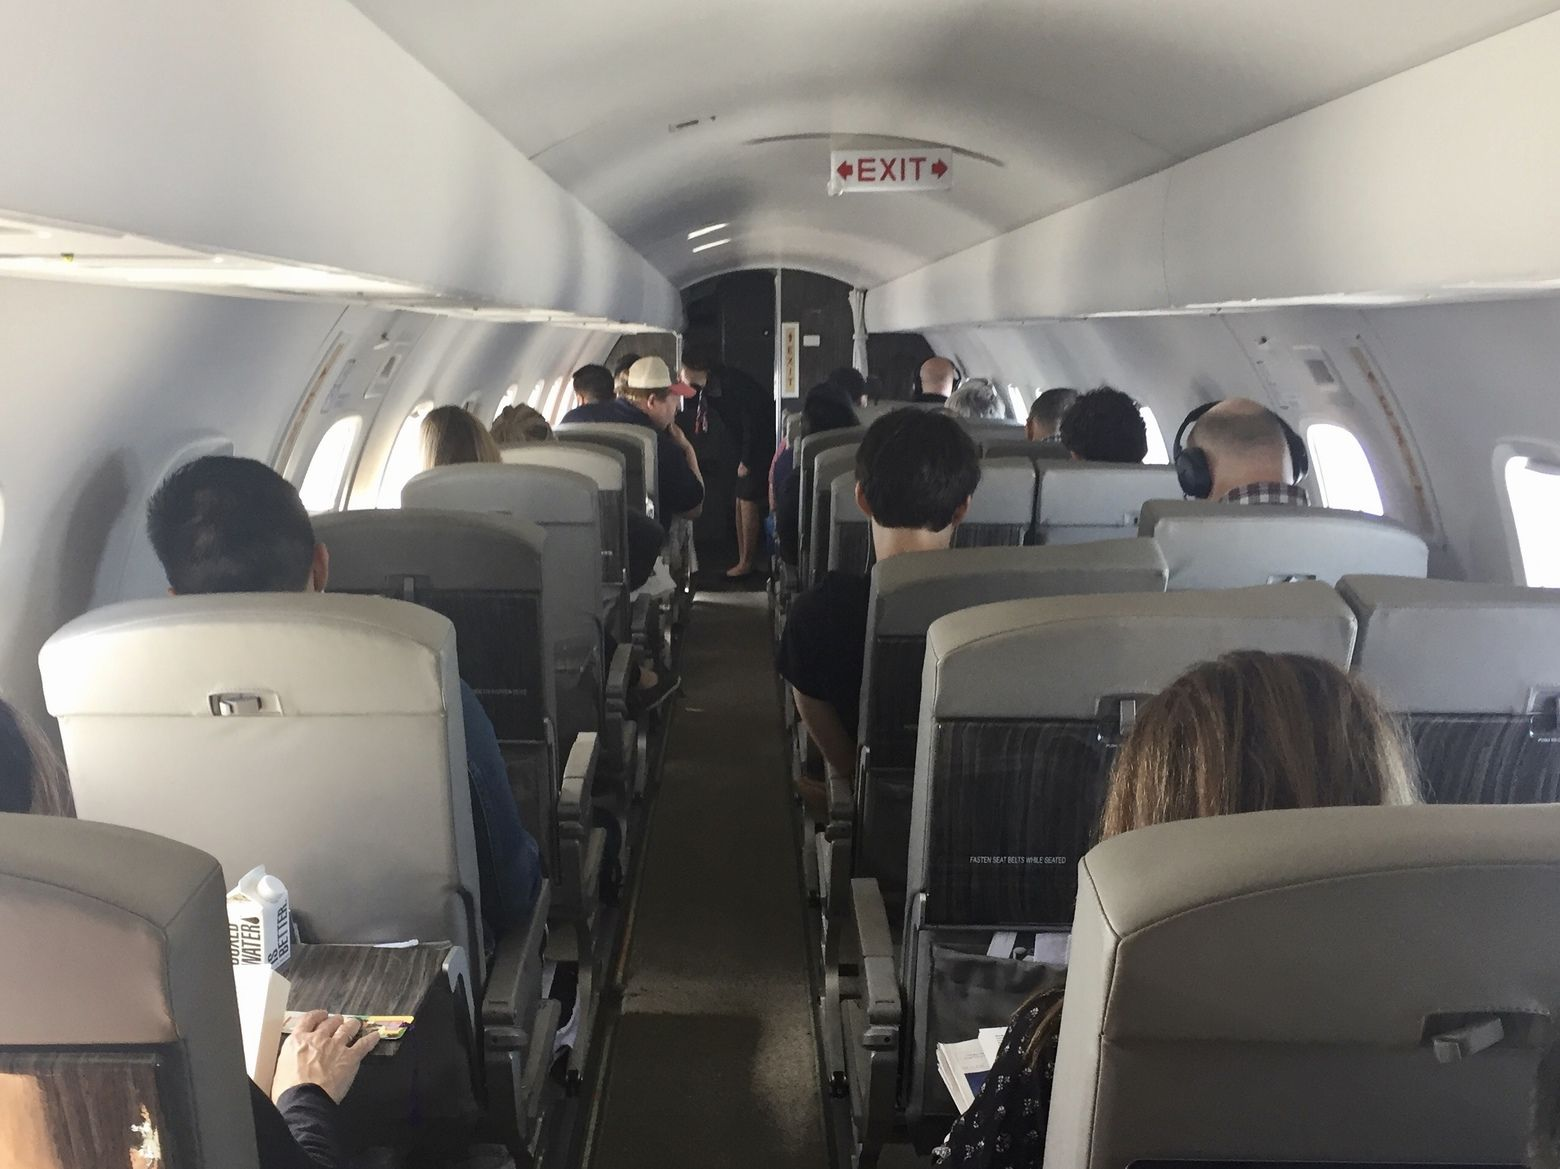 what it s like to fly from seattle to oakland in a semiprivate jet and how you can too on jetsuitex the seattle times south seattle seattle times plane seats pinterest